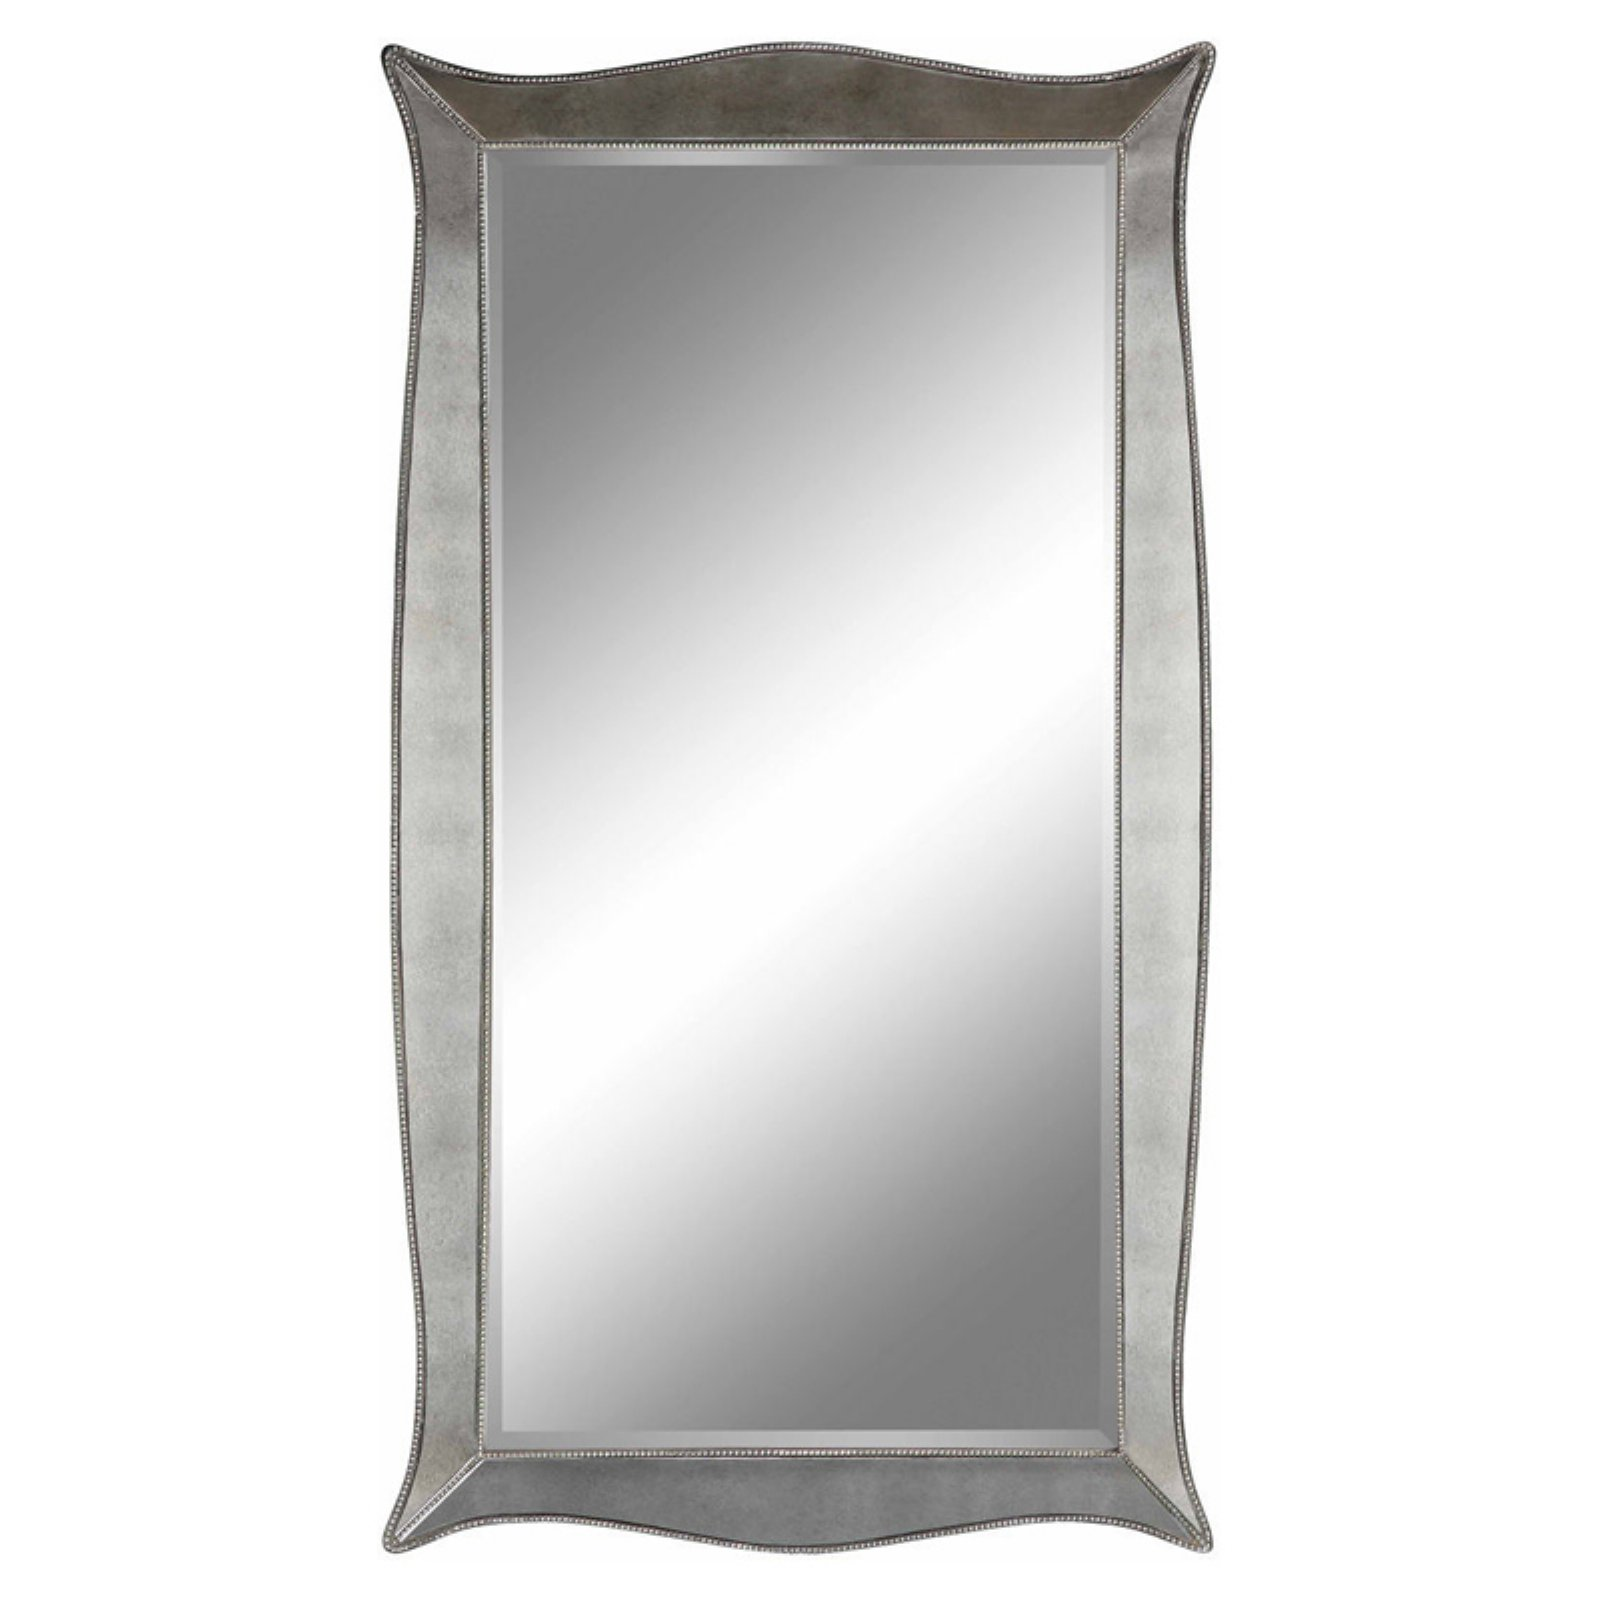 Marlena Floor Mirror 44W x 79H in. by Stein World Furniture